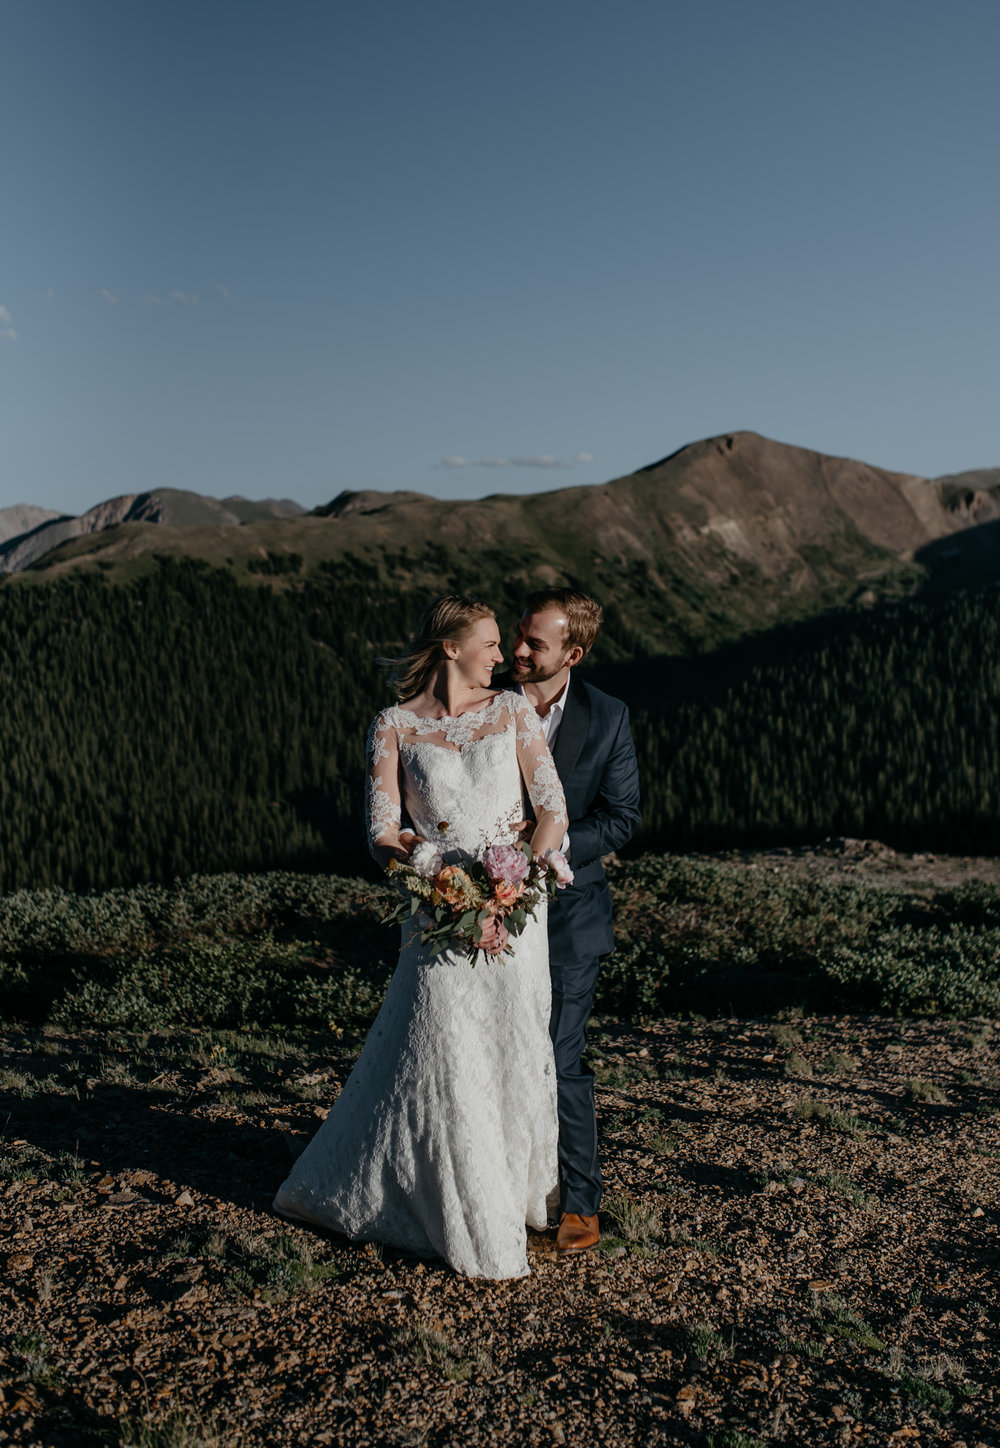 Mountaintop elopement in Aspen, Colorado. Denver wedding and elopement photographer.